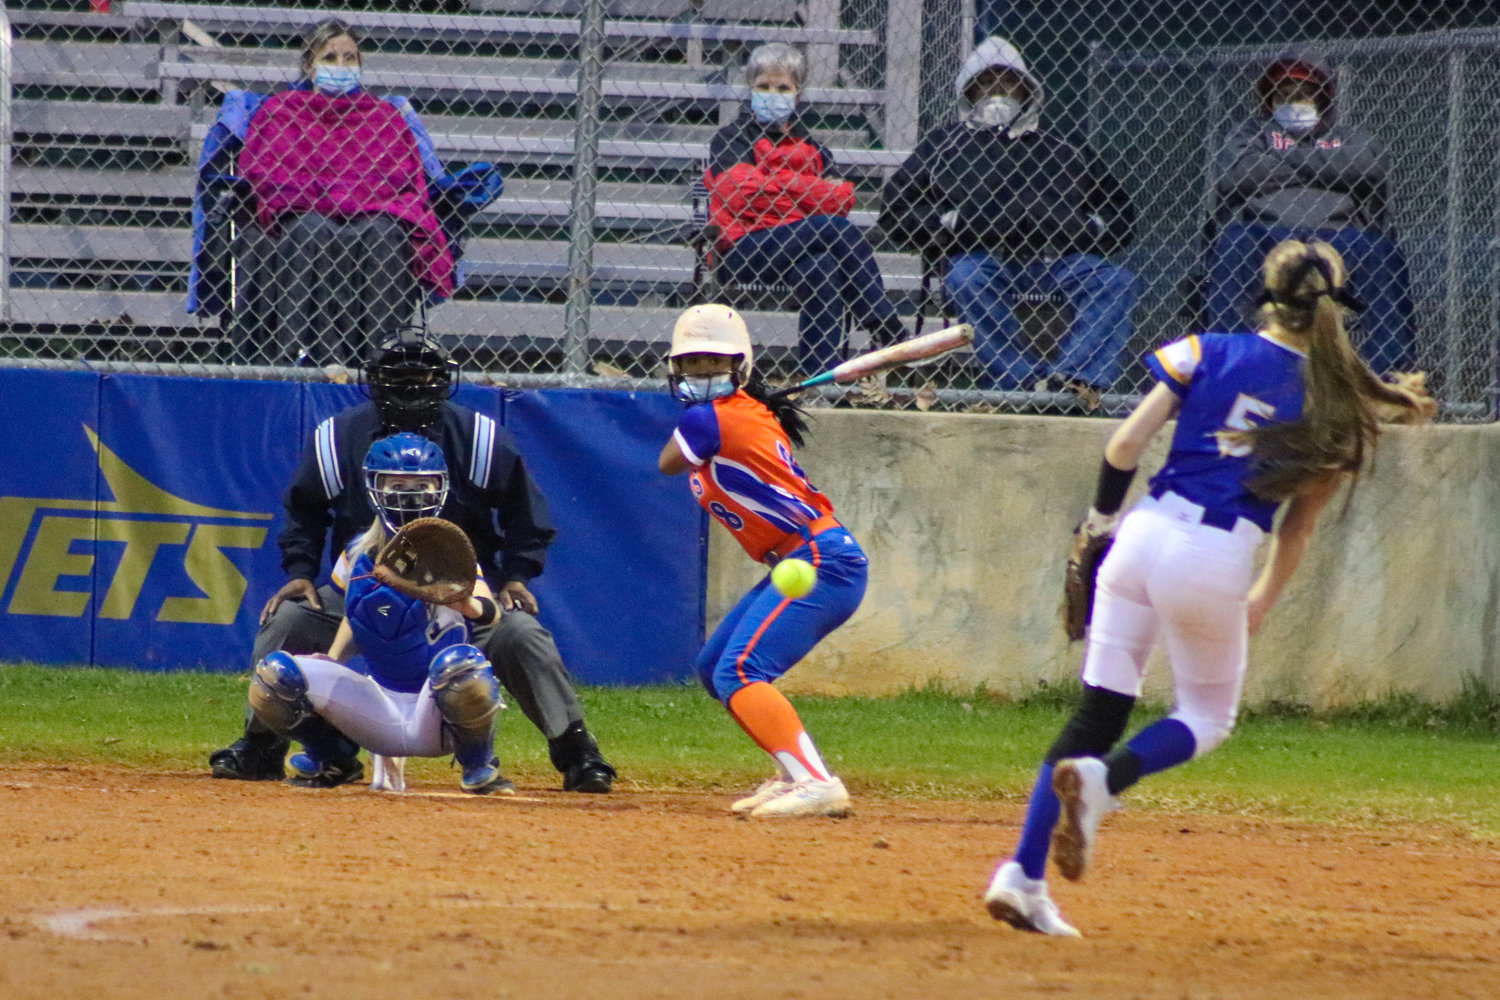 Jordan-Matthews sophomore pitcher Macy Beavers (5) throws a pitch to Randleman sophomore Jordan Booker (8) in the Jets' season-opening 15-5 loss to Randleman on Tuesday. Beavers threw 112 pitches, allowing 15 runs on 15 hits against the Tigers.